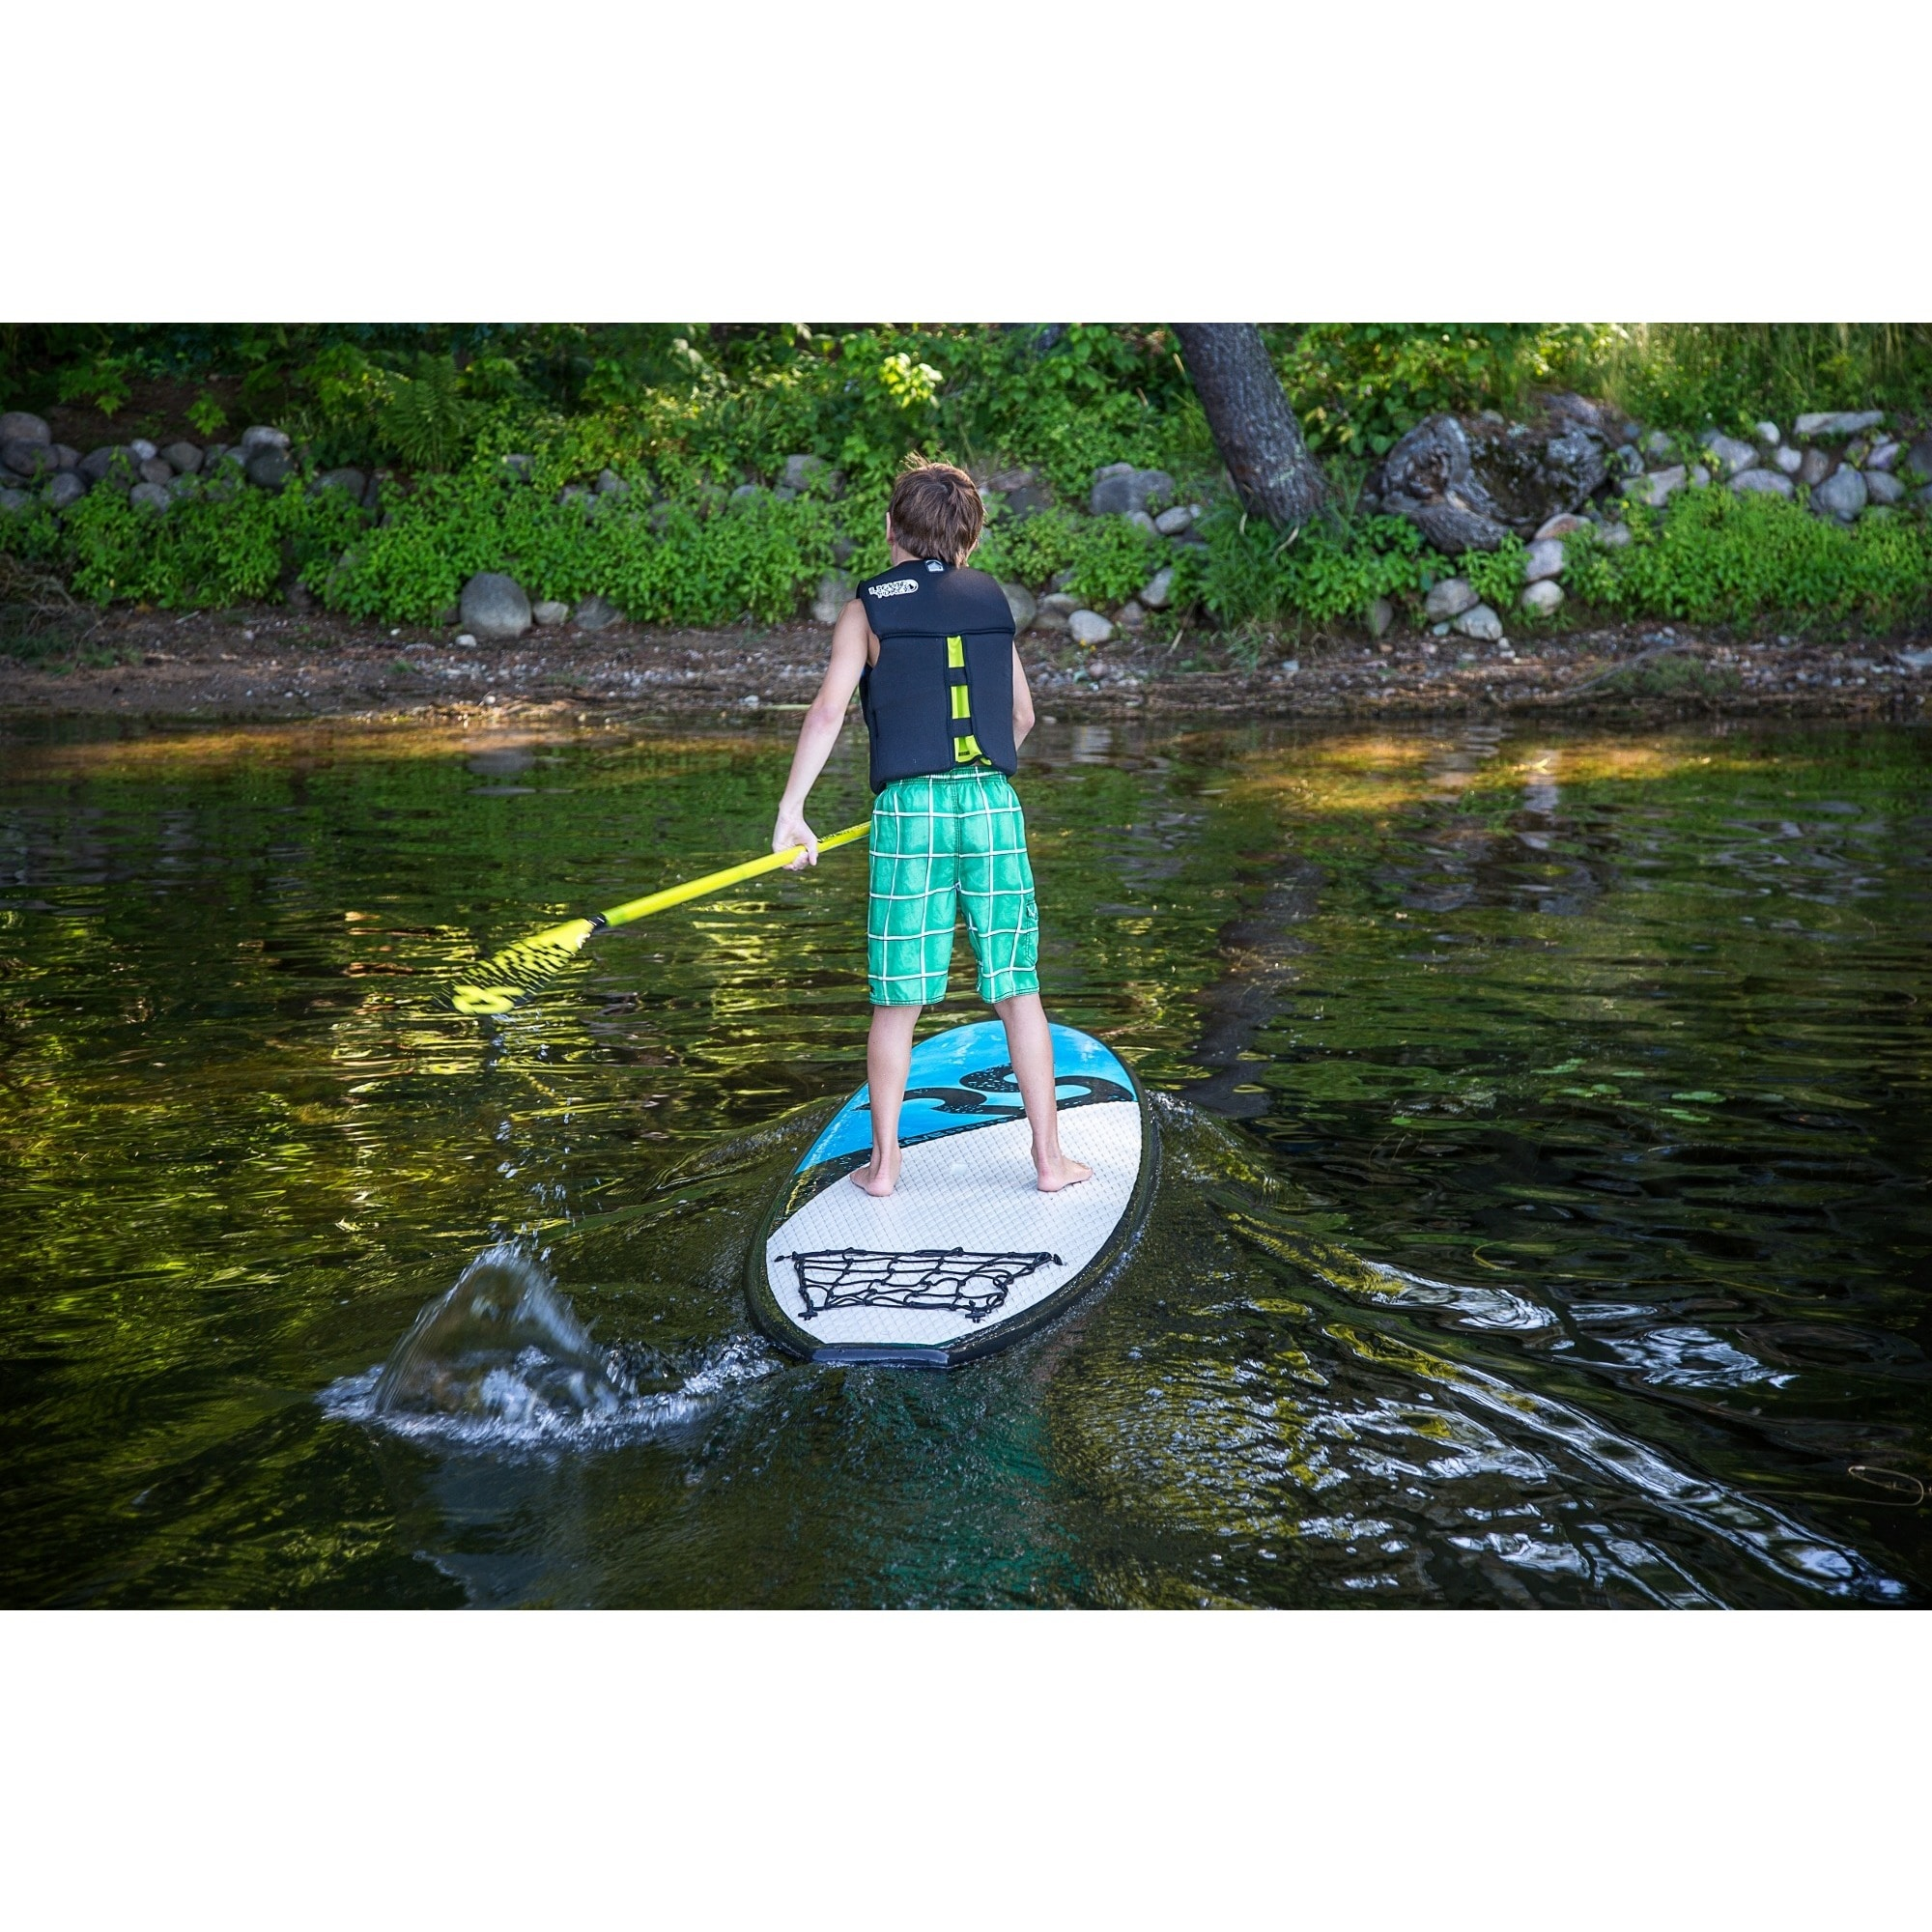 9049a53cb Shop Rave Sports Flight 8.5-foot Soft Top Stand Up Paddle Board - Free  Shipping Today - Overstock.com - 9048708